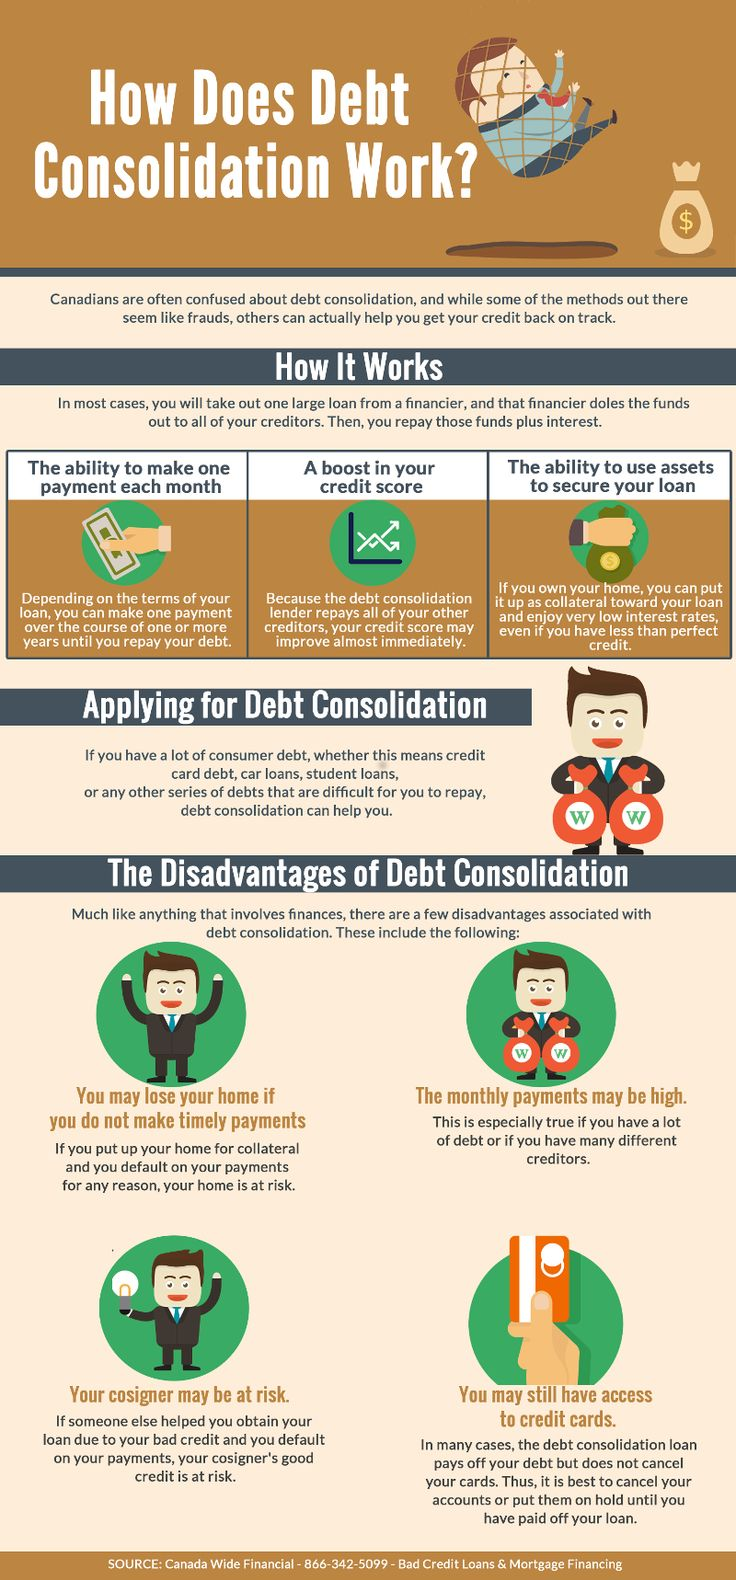 Consolidating credit card debt into one loan